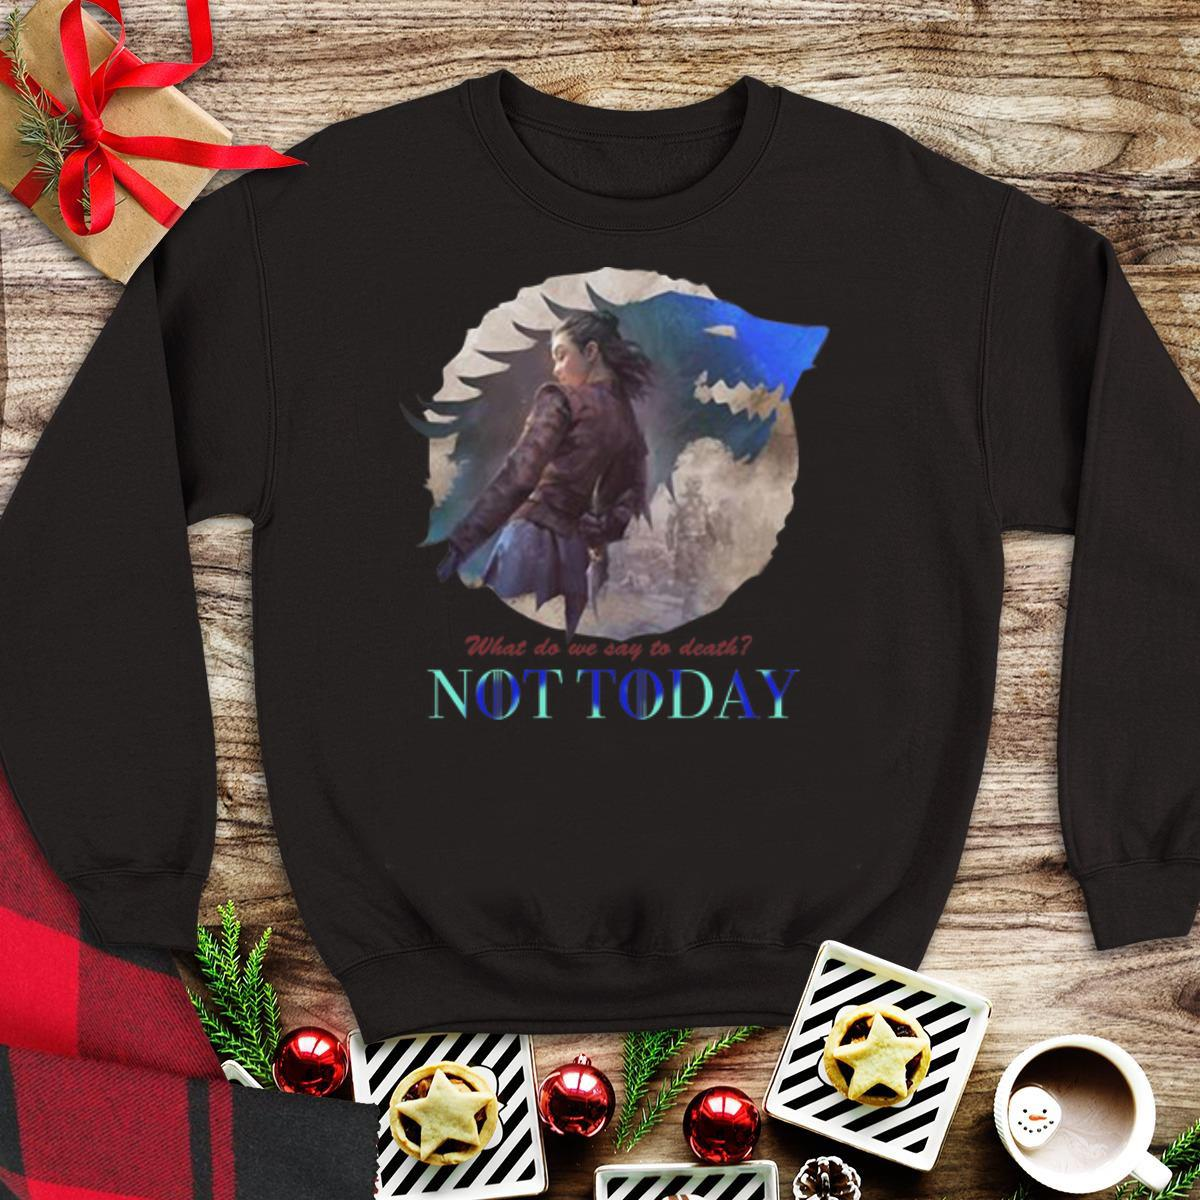 Awesome What Do We Say To Death Game Of Thrones Not Today Arya Stark Shirt 1 1.jpg